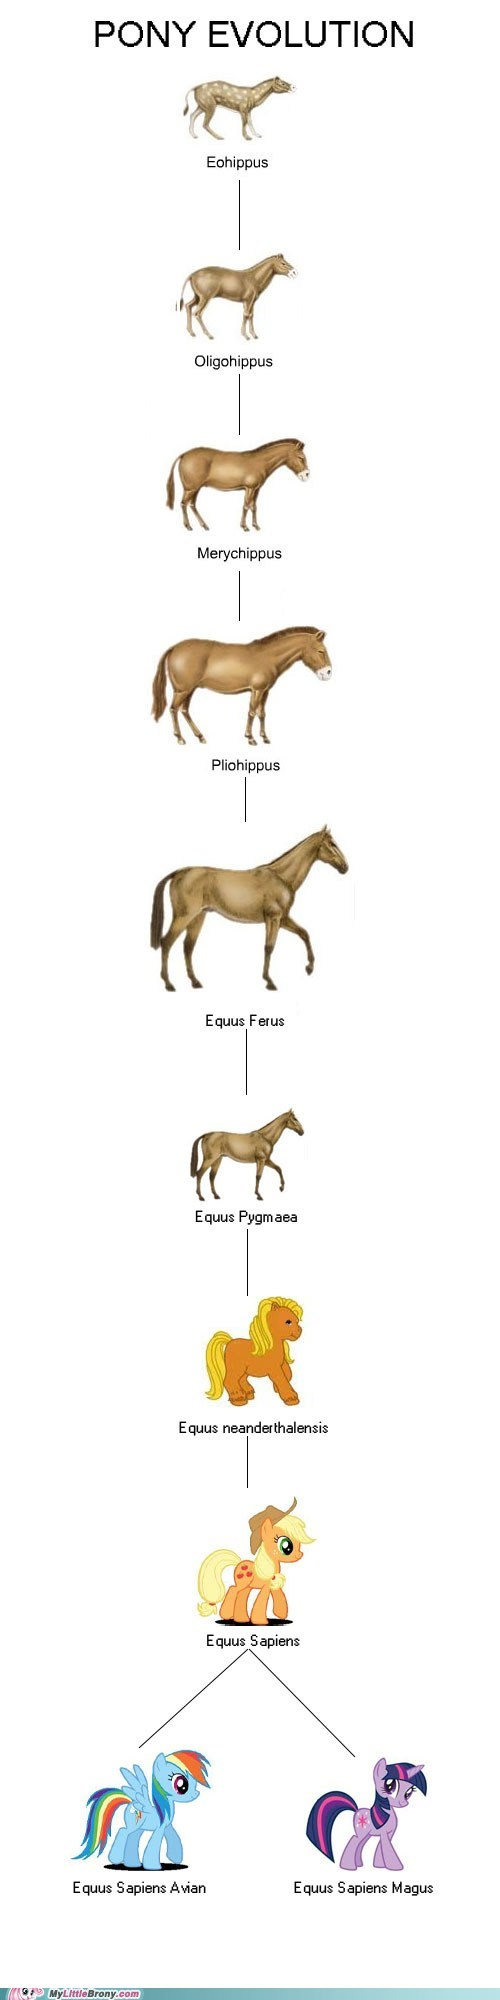 evolution gen 4 ponies the internets - 6435502592